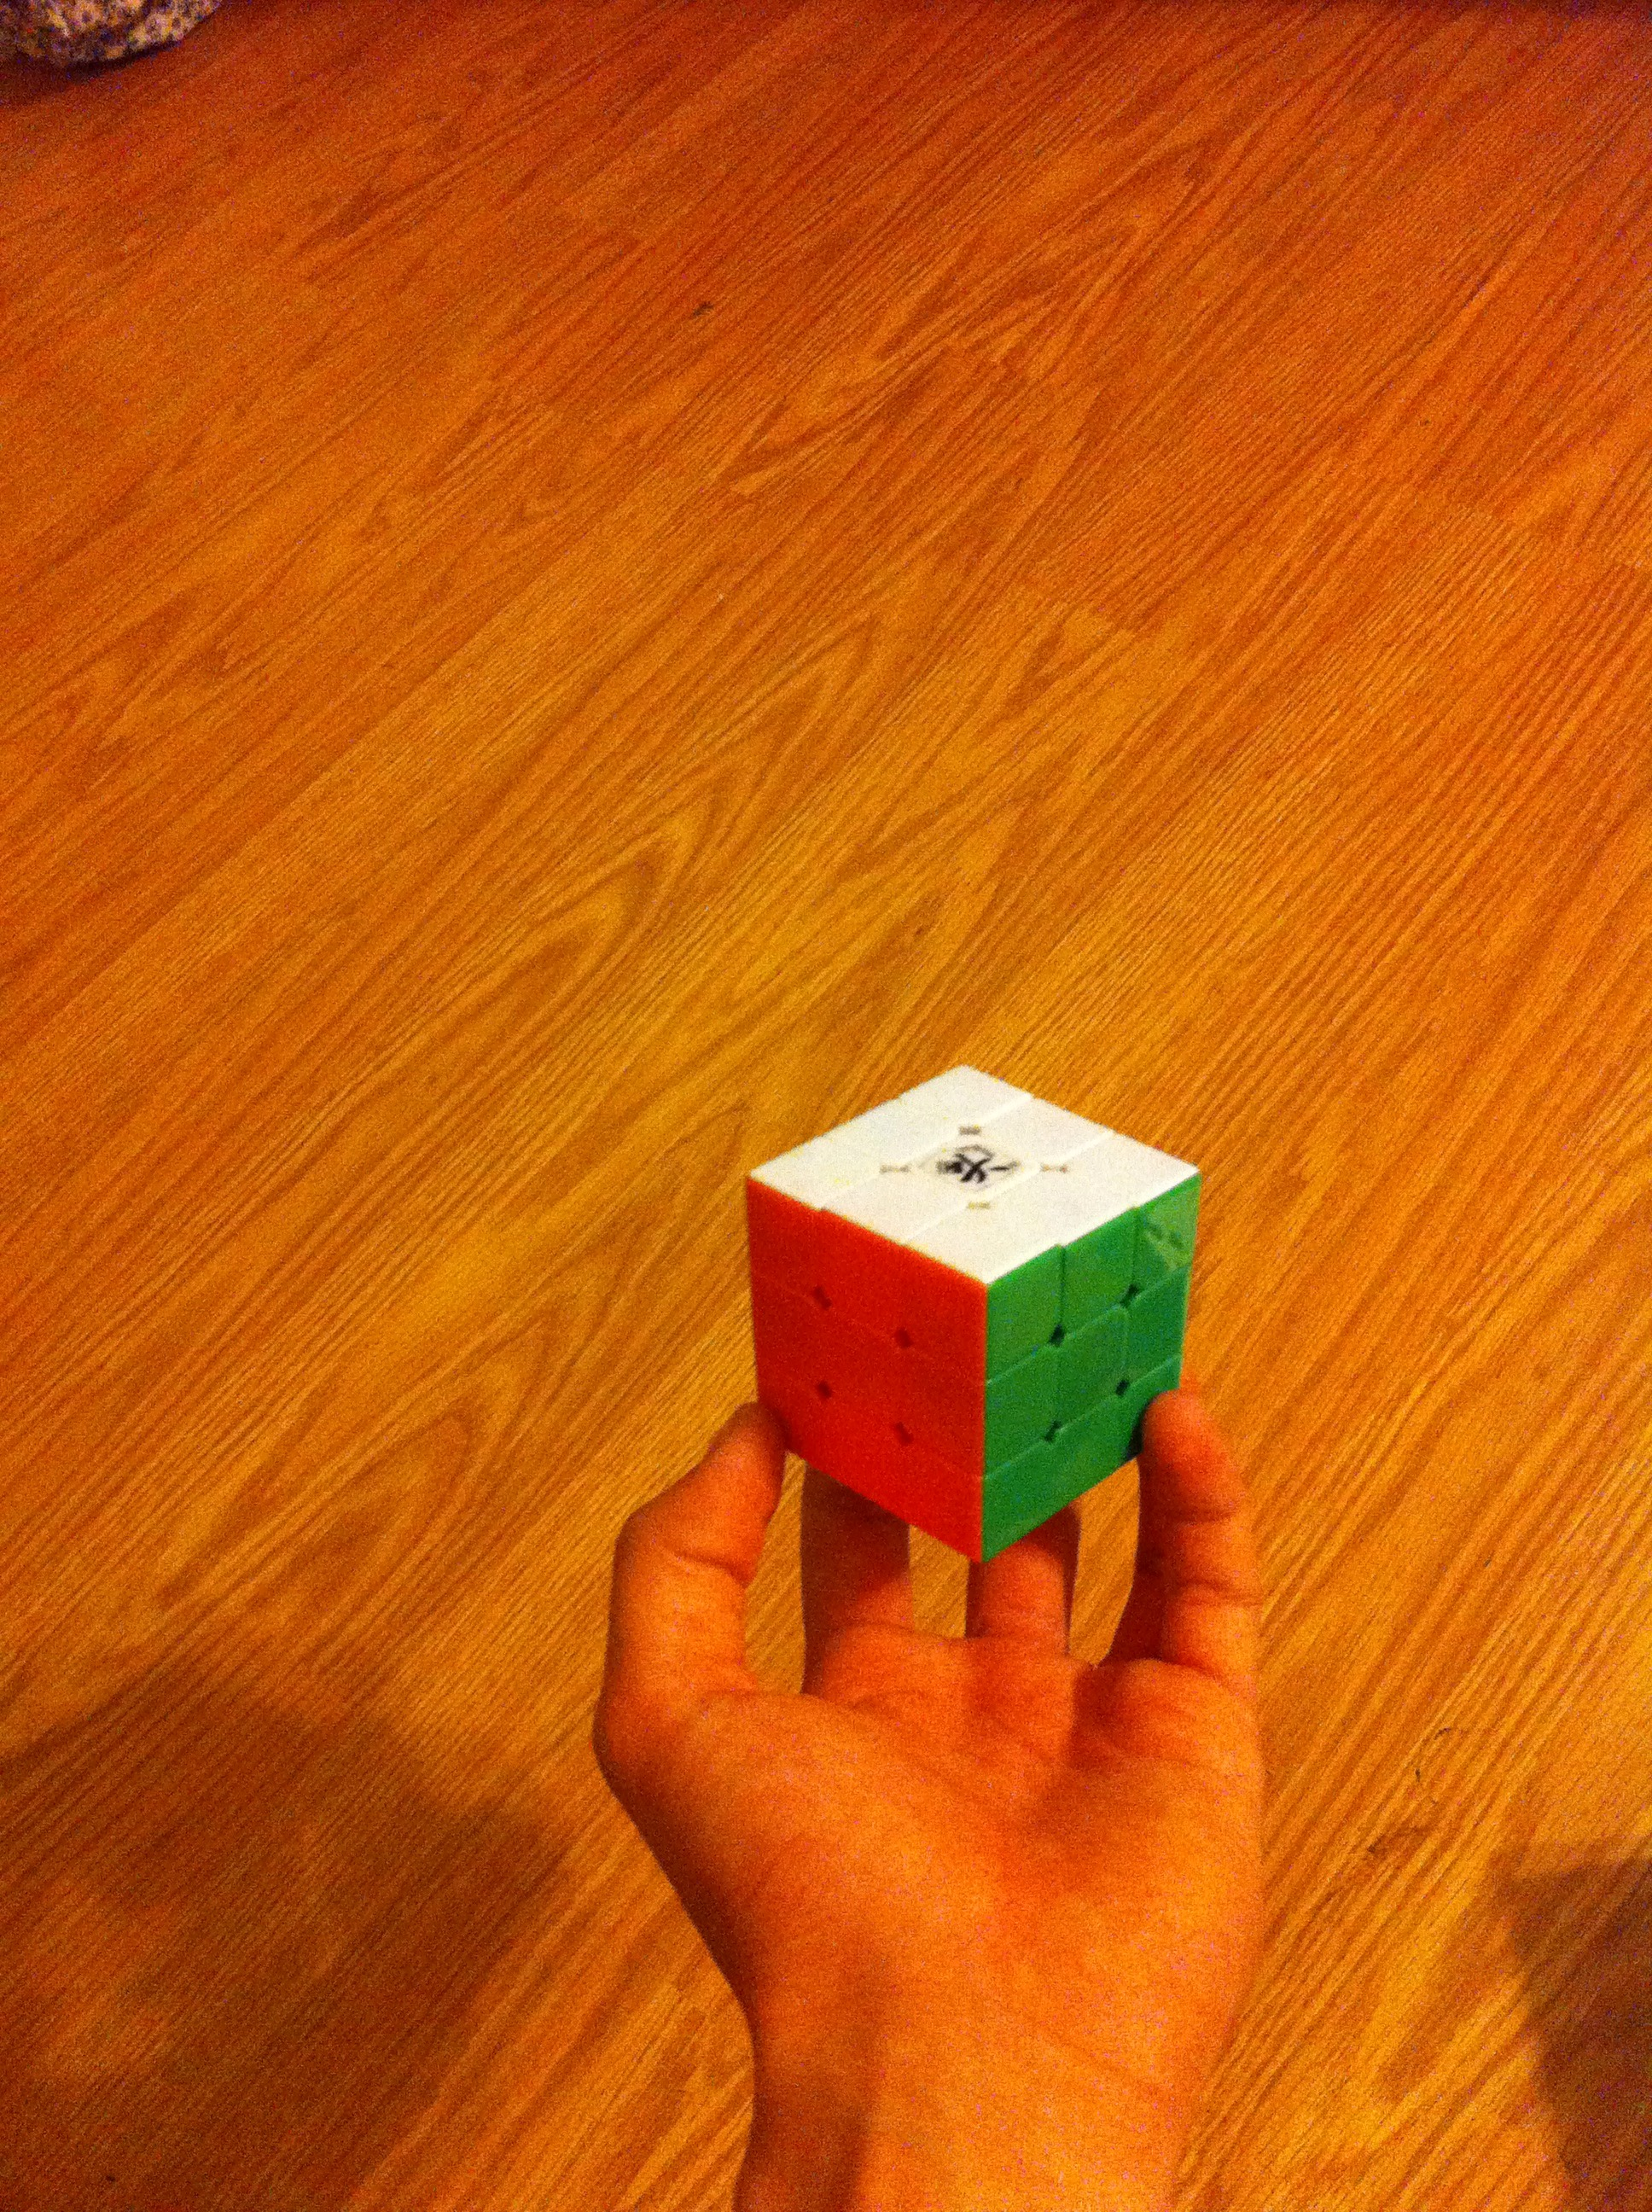 How To Solve The Rubix Cube